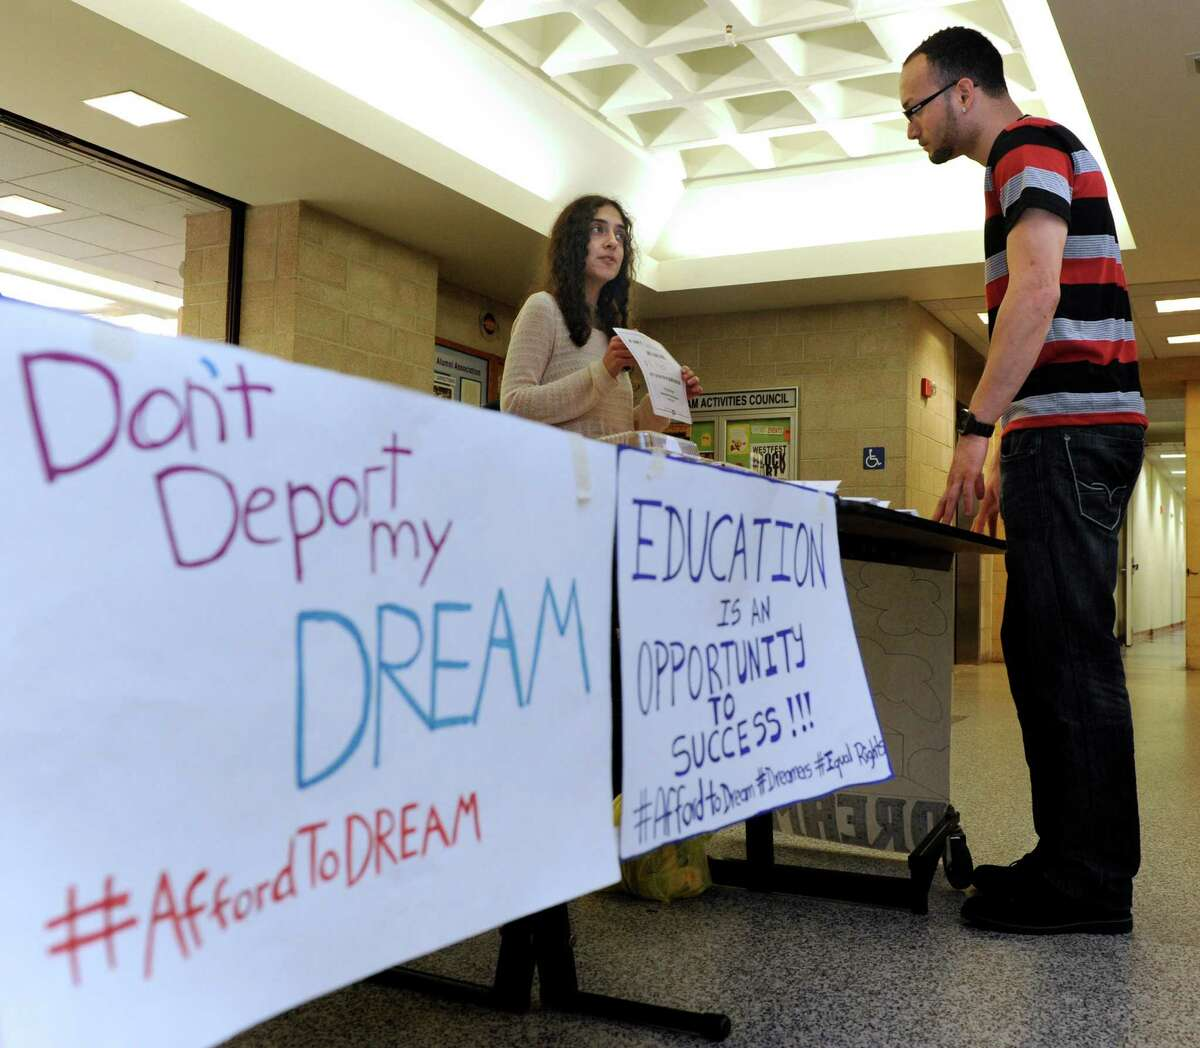 Danbury resident and Western Connecticut State University graduate, Carolina Bortolleto, left, co-founder of Connecticut Students for a DREAM, talks with Ramon Velazquez, 27, a junior at Western Thursday, May 1, 2014. Connecticut Students for a DREAM want Connecticut to allow undocumented students to be eligible to receive schoarships that are funded with their tuition money.